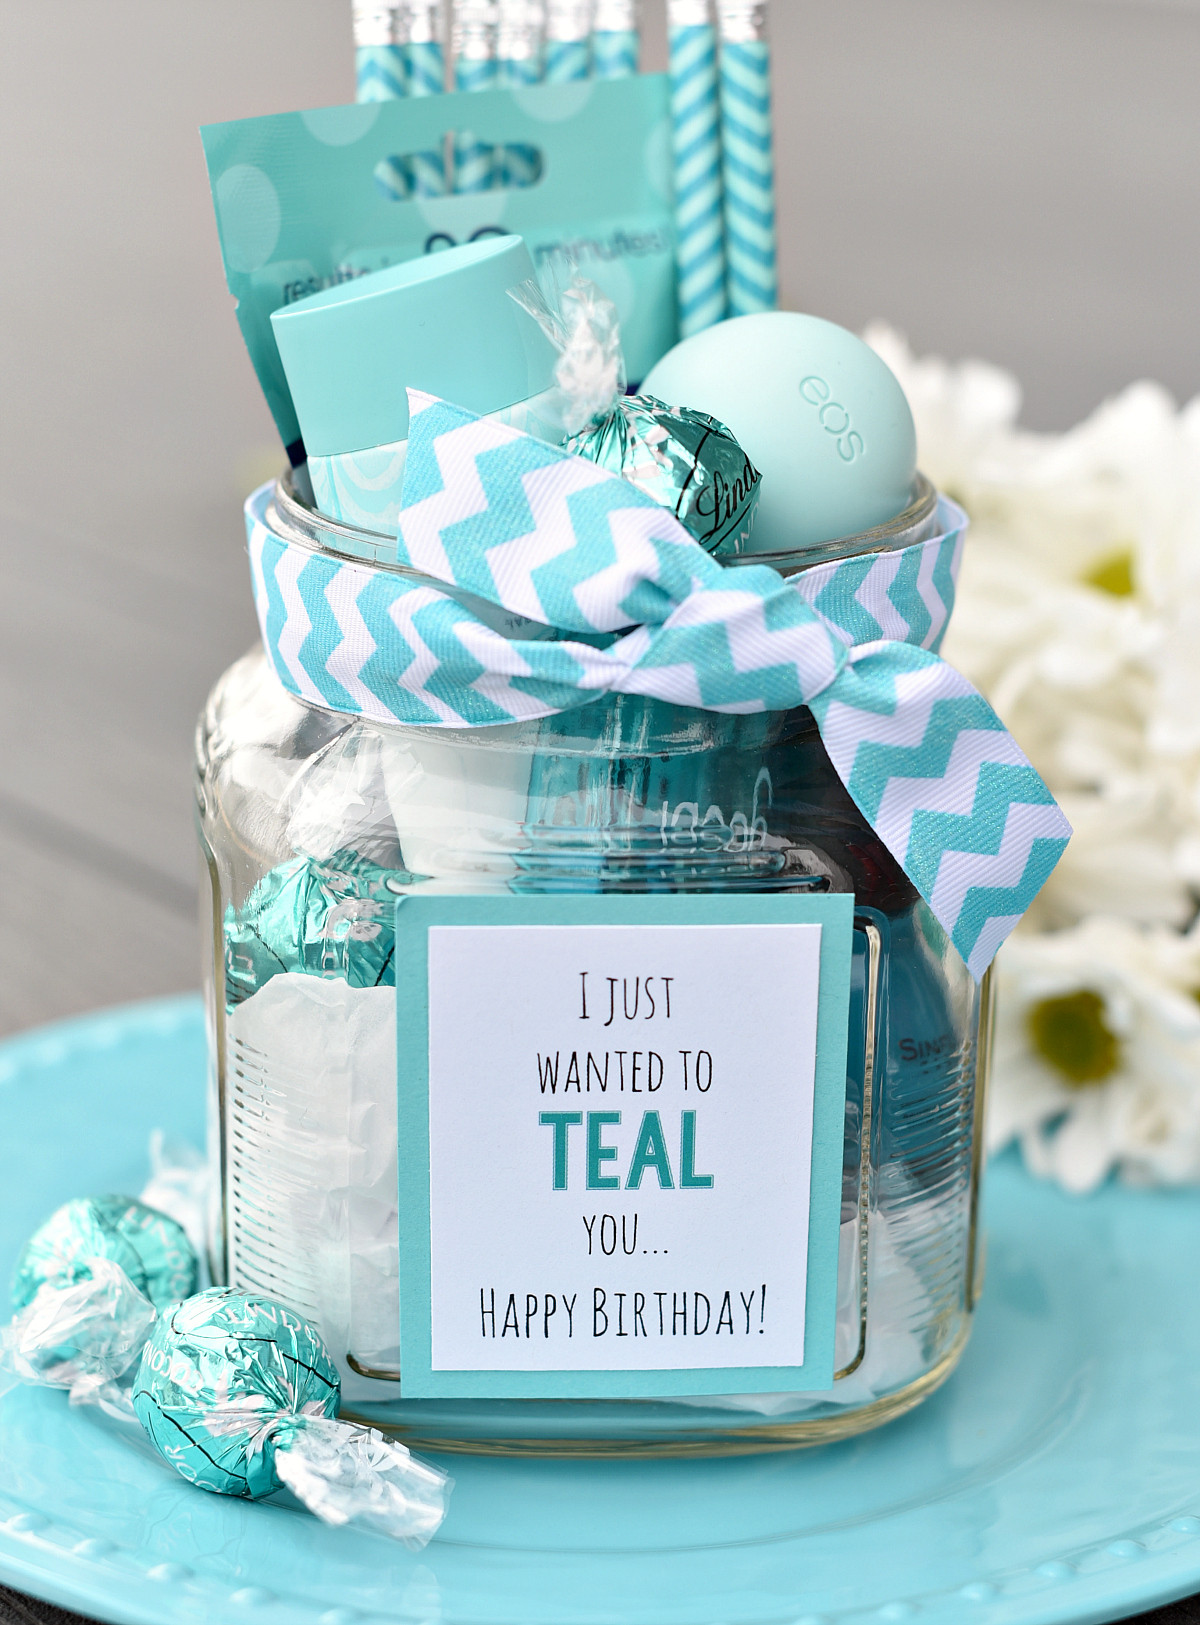 Cute Gift Basket Ideas  Teal Birthday Gift Idea for Friends – Fun Squared